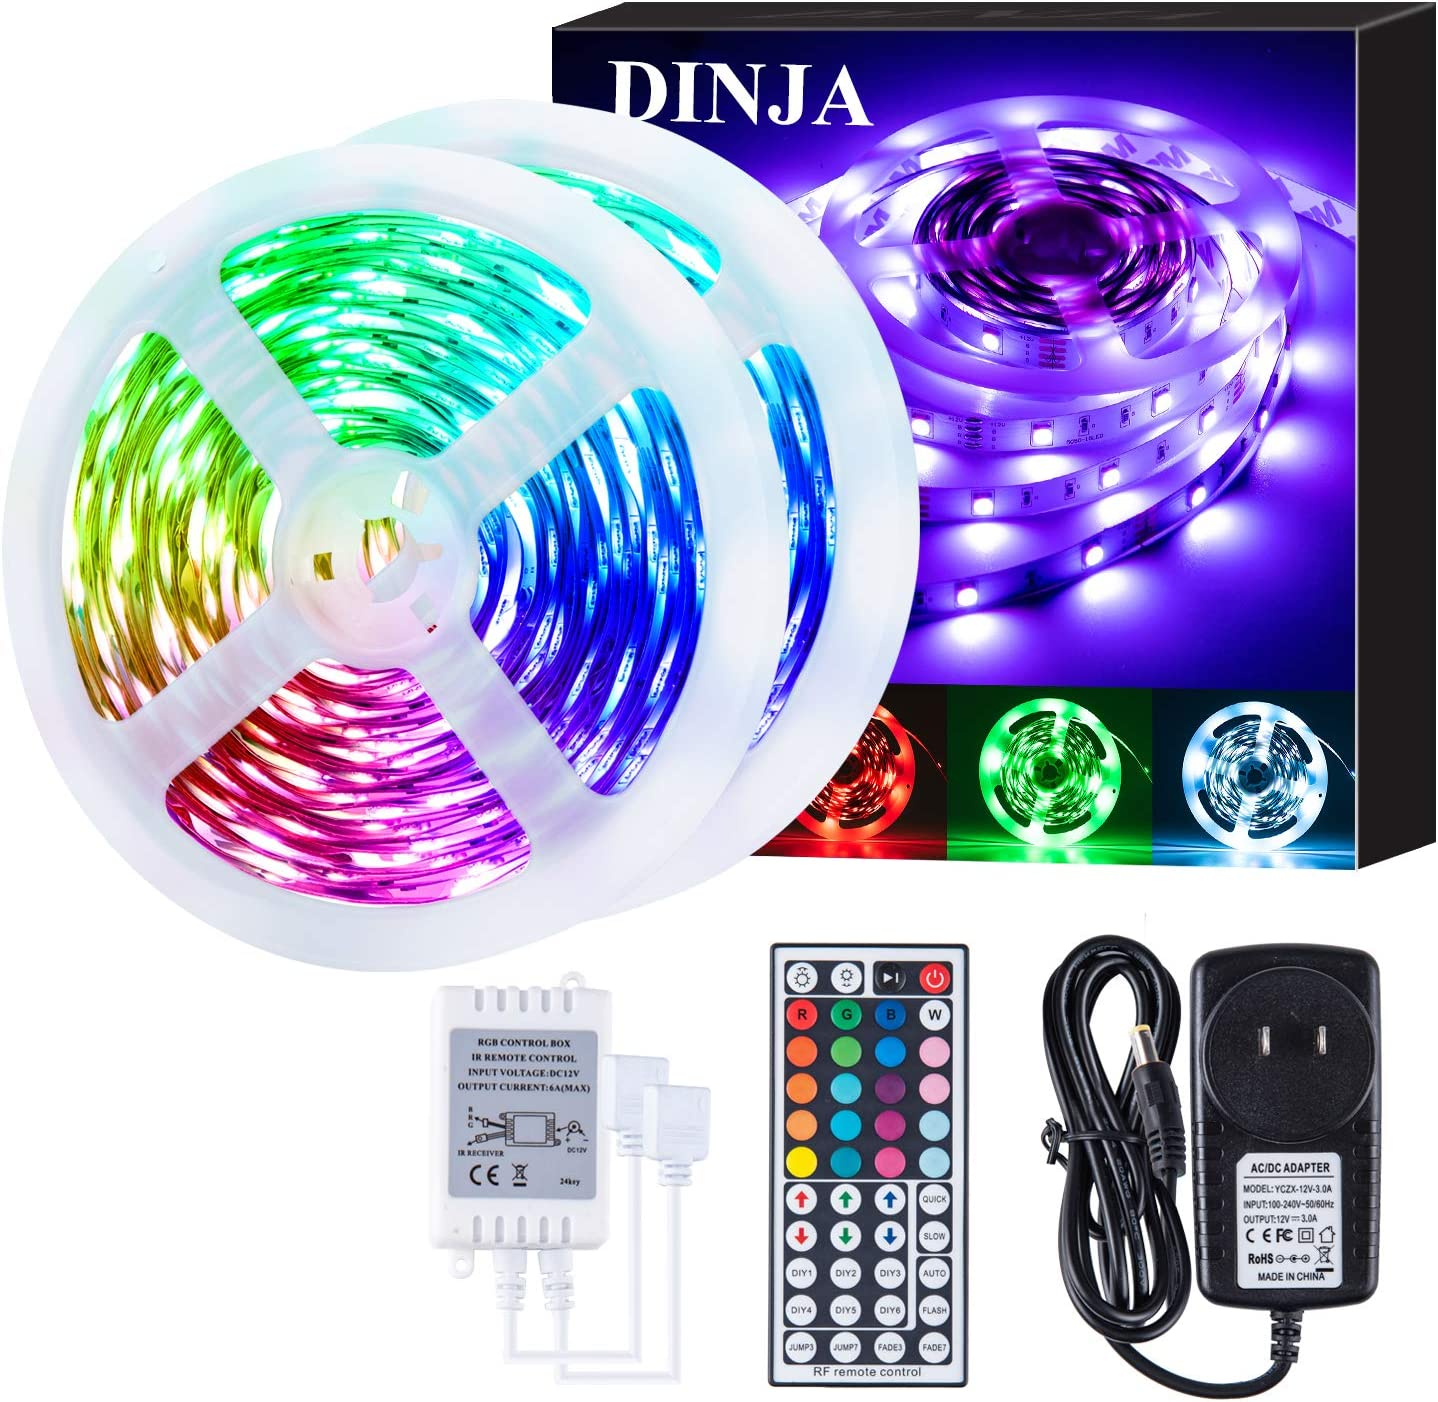 Led RGB Strip Rope Lights Flexible Color Changing 32.8ft 10M with 44key RF Remote Control 12V 5050 300 LEDs with led Strip Light for Bedroom Home Bedroom Cabinet TV Decoration,Non-Waterproof.